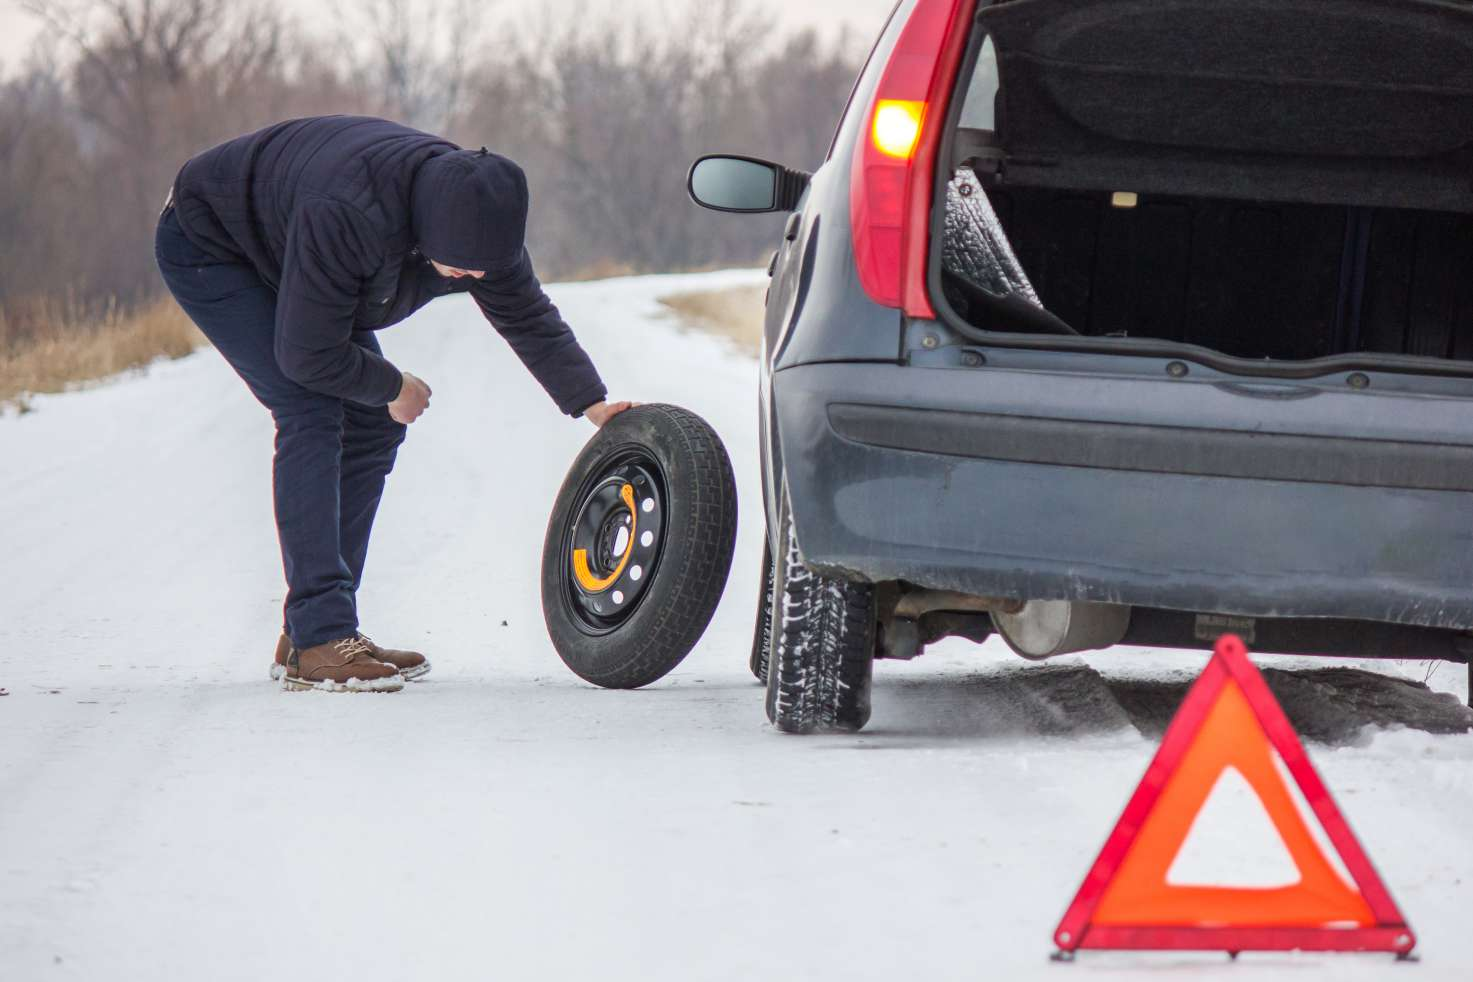 Man changing a tire on his car in the winter. A pylon is set up for passing cars.